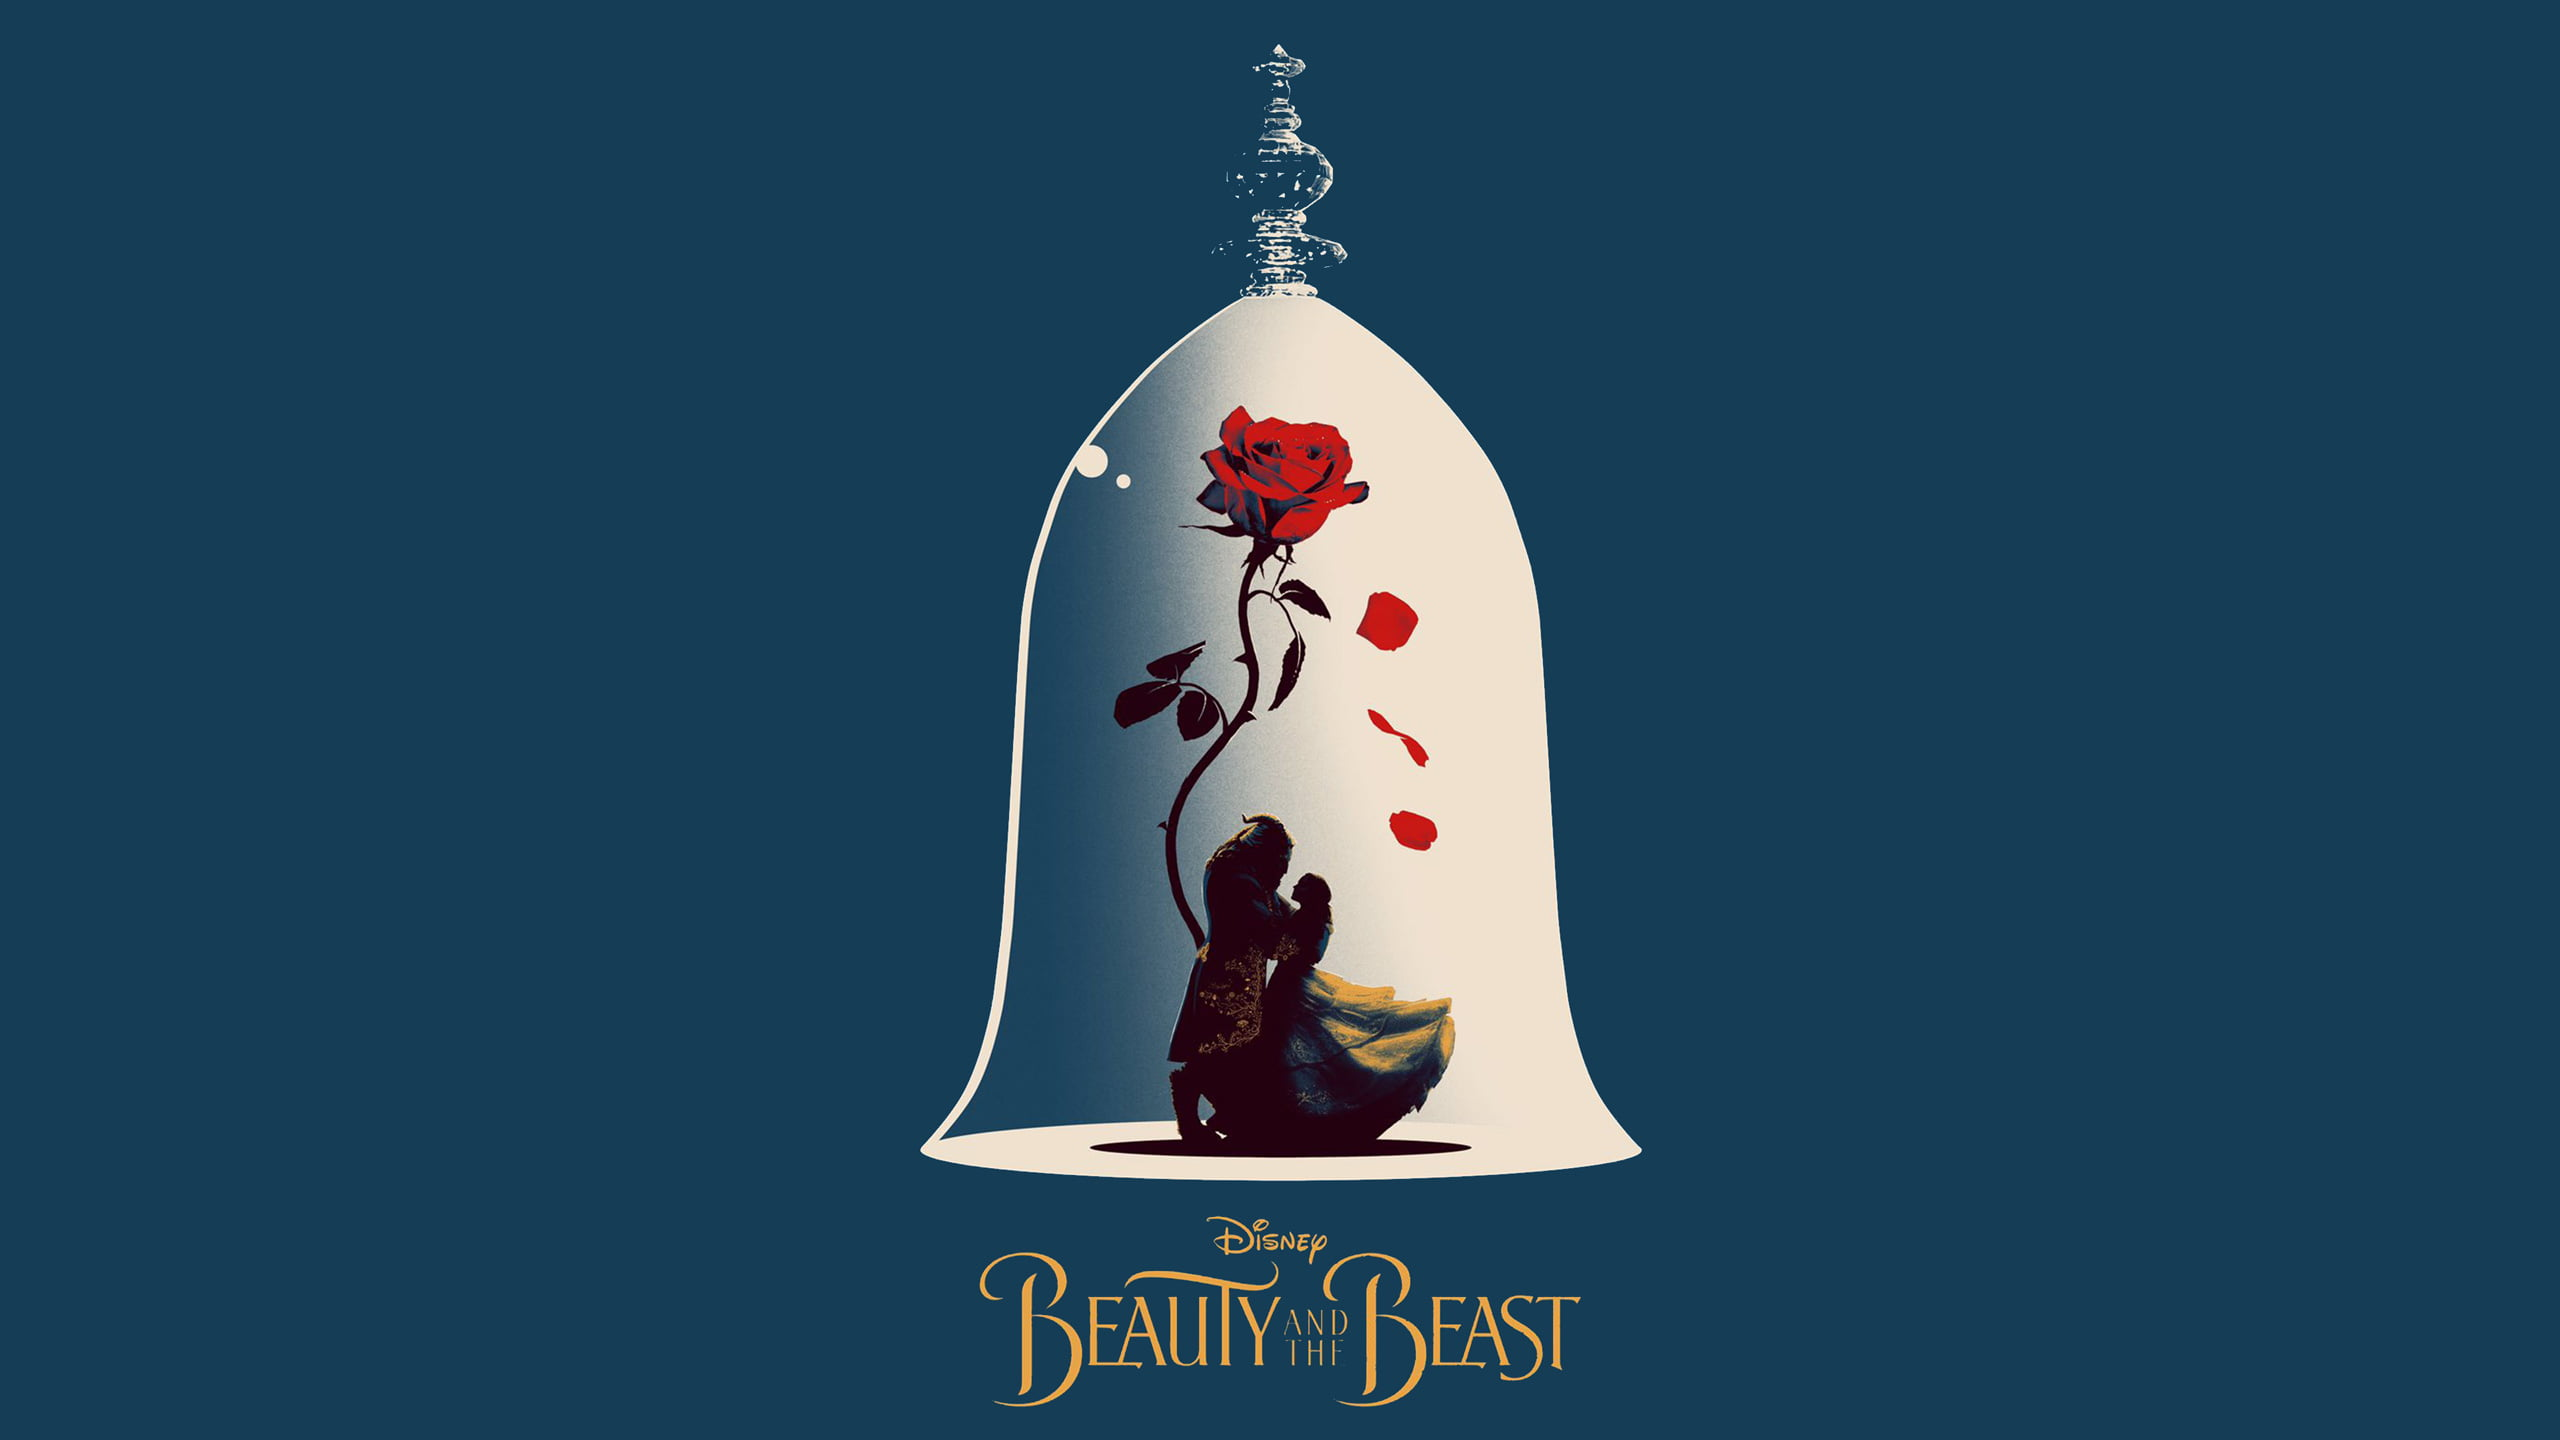 Quotes Wallpaper For Iphone 5c Disney Beauty And The Beast Poster Hd Wallpaper